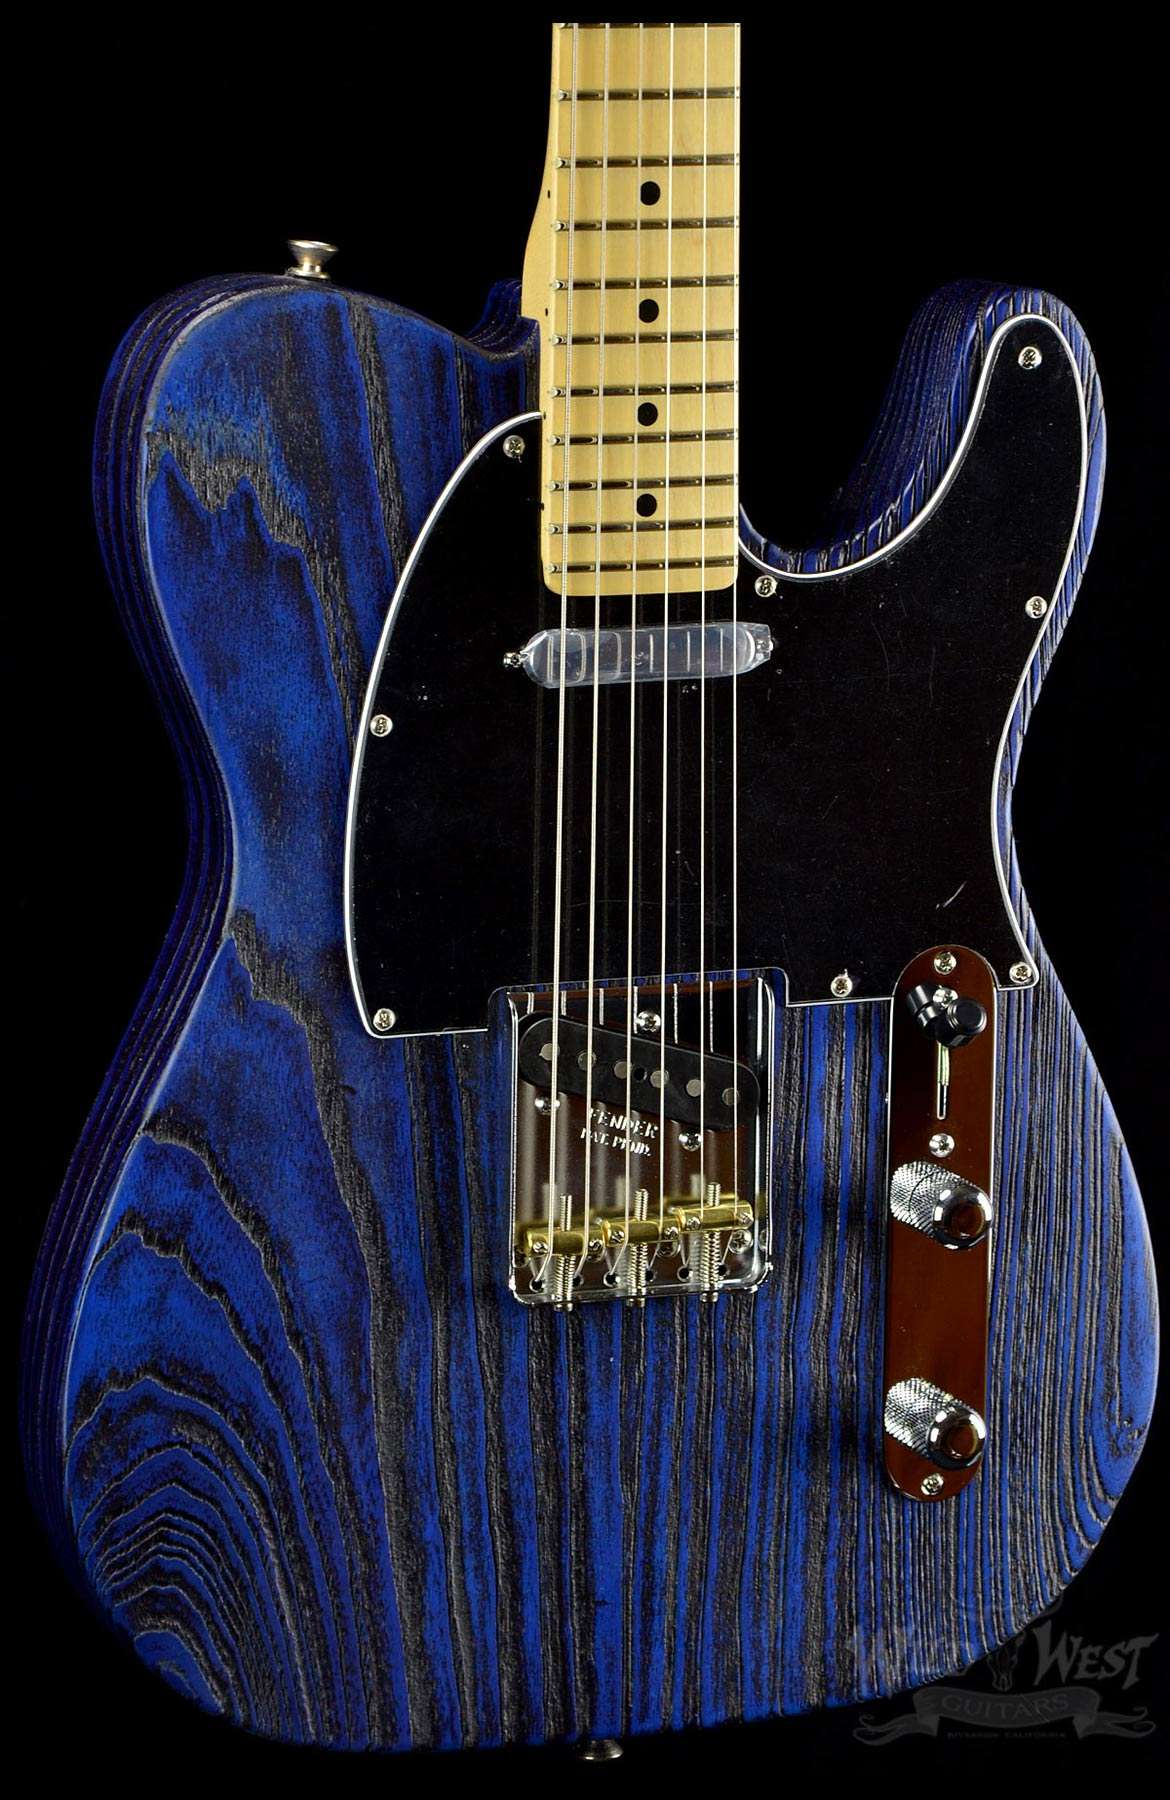 Fender usa limited edition sandblasted telecaster sapphire blue wild west authentic publicscrutiny Gallery